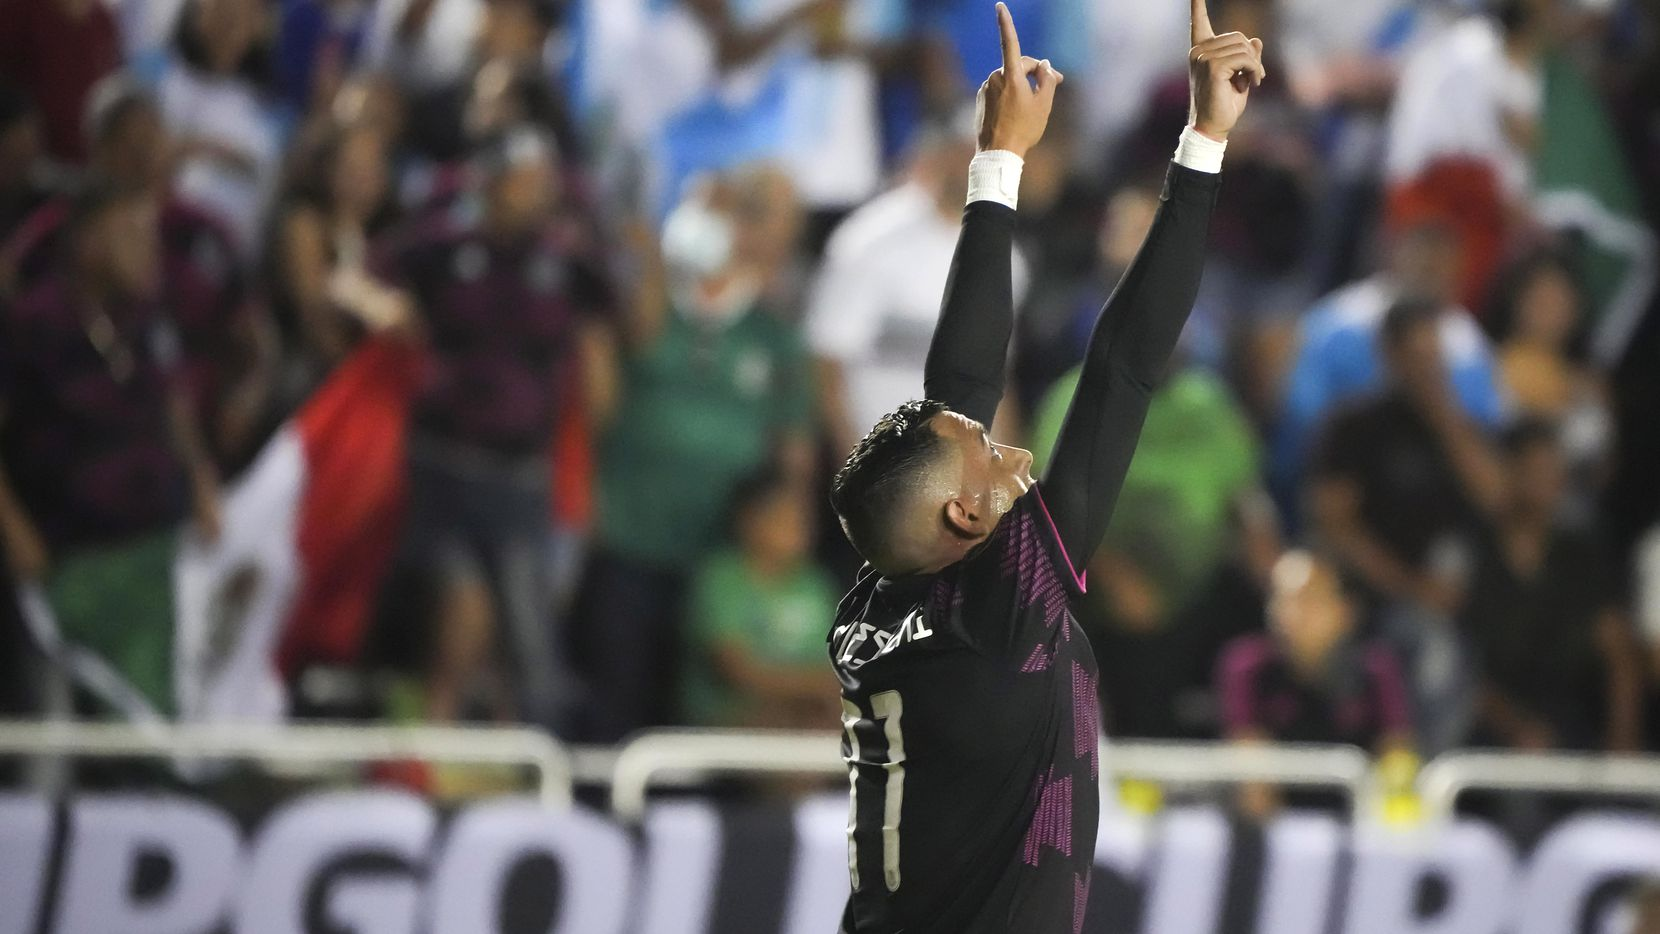 Mexico forward Rogelio Funes Mori celebrates after scoring a goal during the second half of a CONCACAF Gold Cup Group A soccer match against Guatemala at the Cotton Bowl on Wednesday, July 14, 2021, in Dallas.